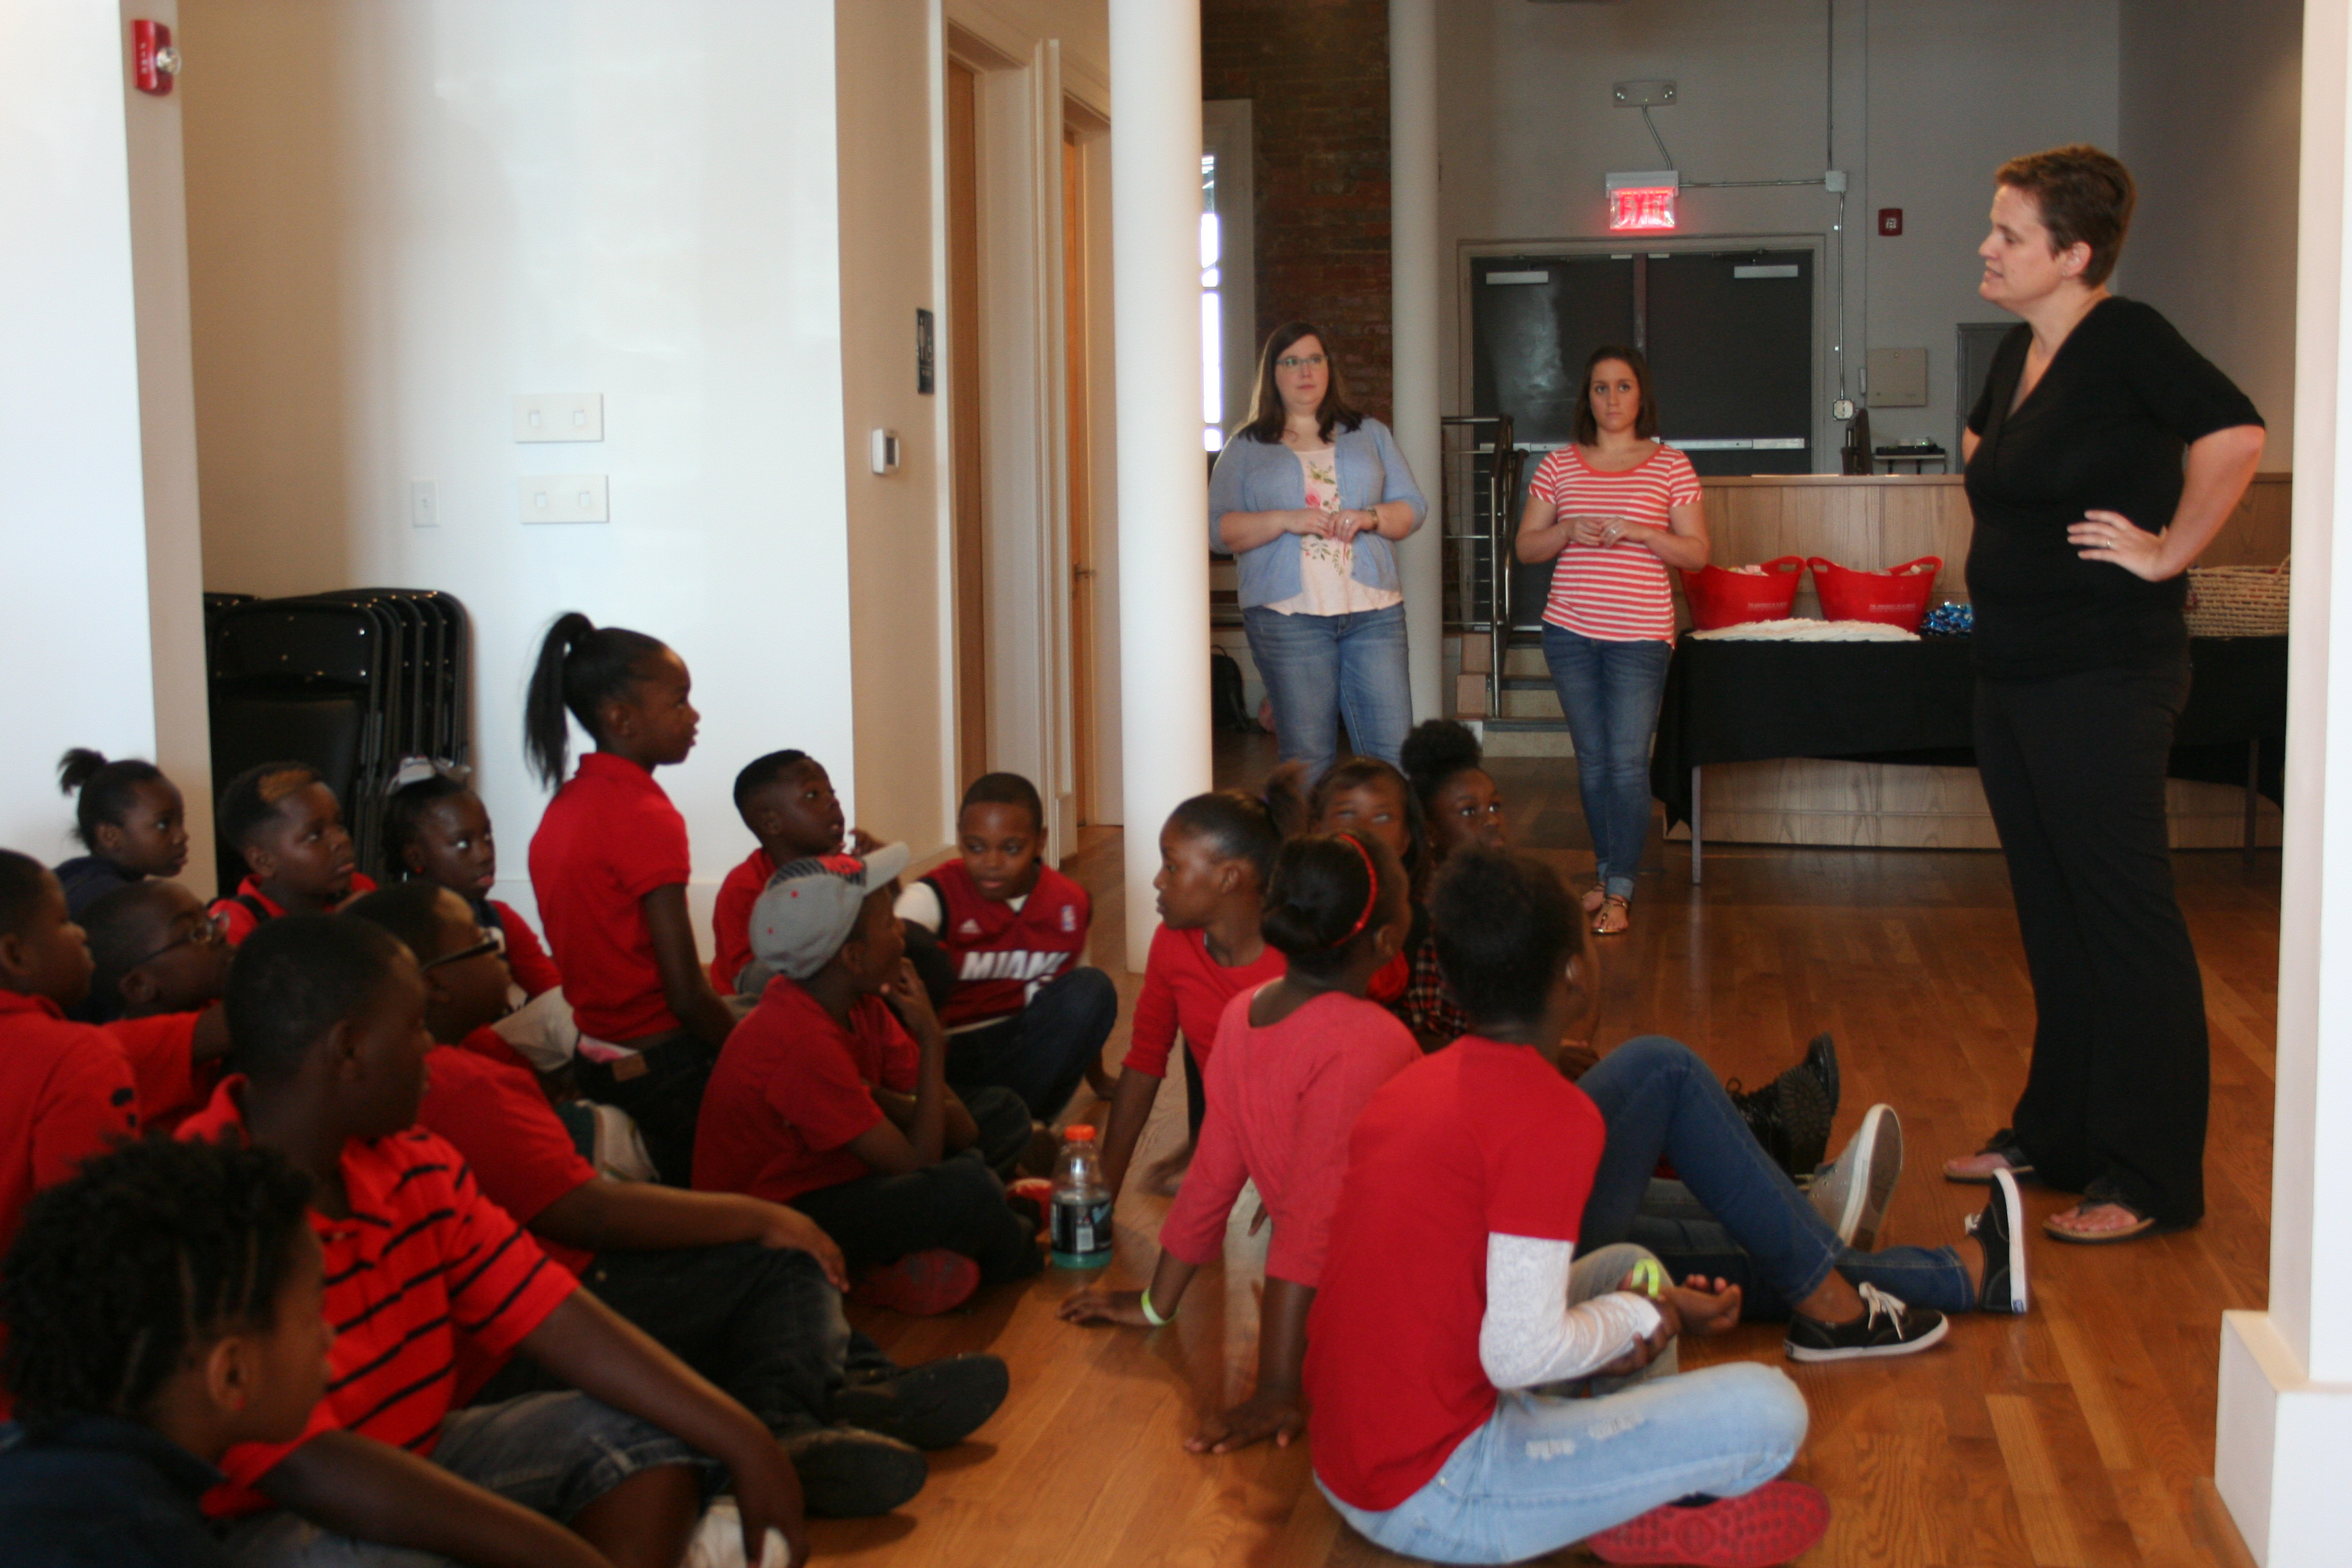 Dr. Lucy Curzon discusses artworks with middle and elementary kids at the Paul Jones Gallery.